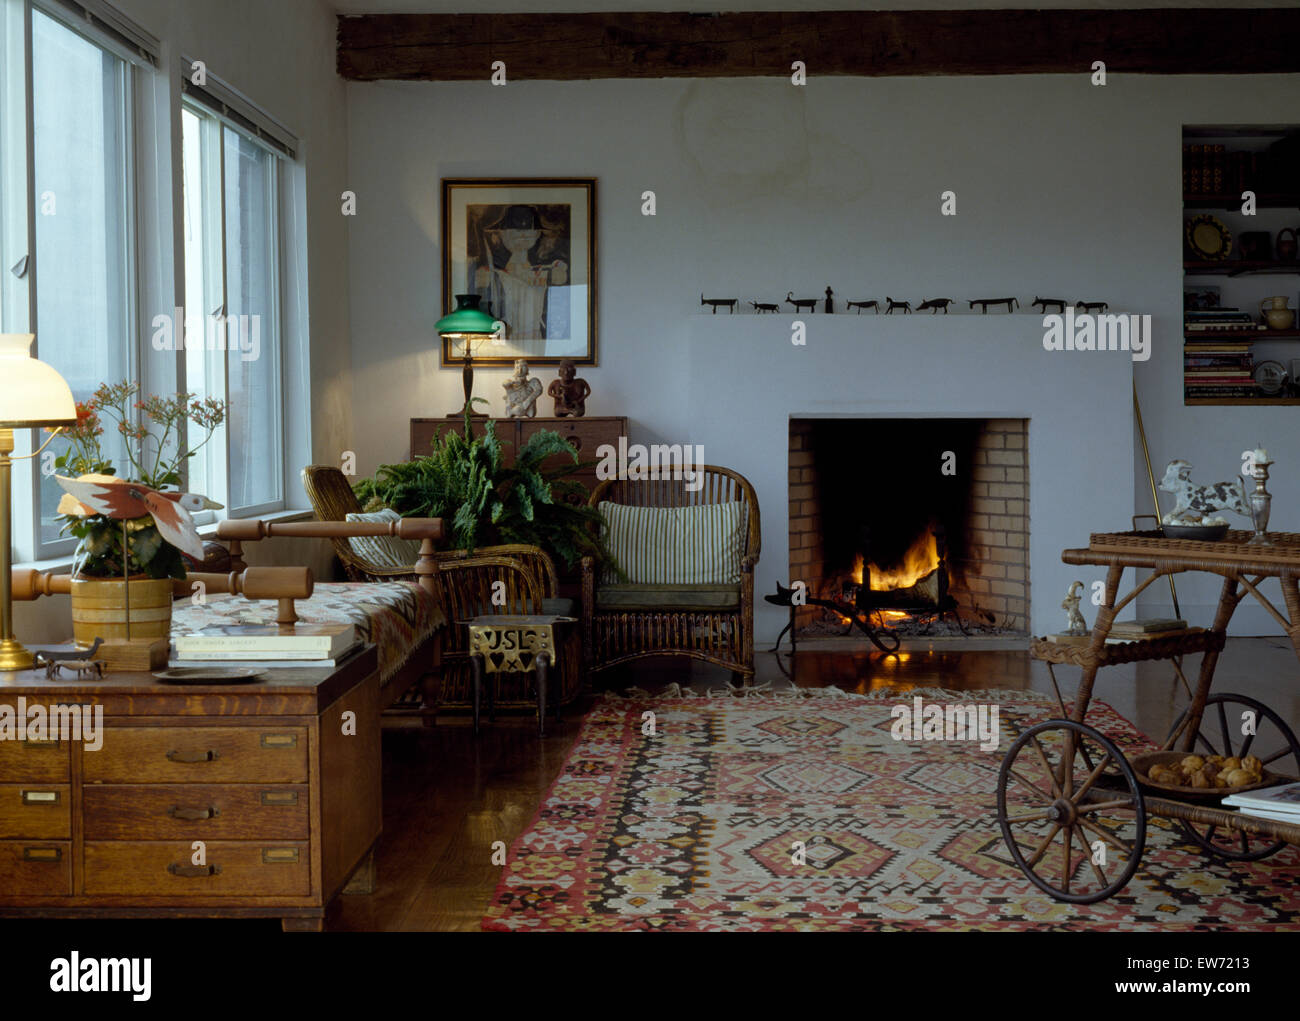 Captivating Kelim Rug And Old Pine Chest In Country Living Room With Lighted Fire In  The Fireplace